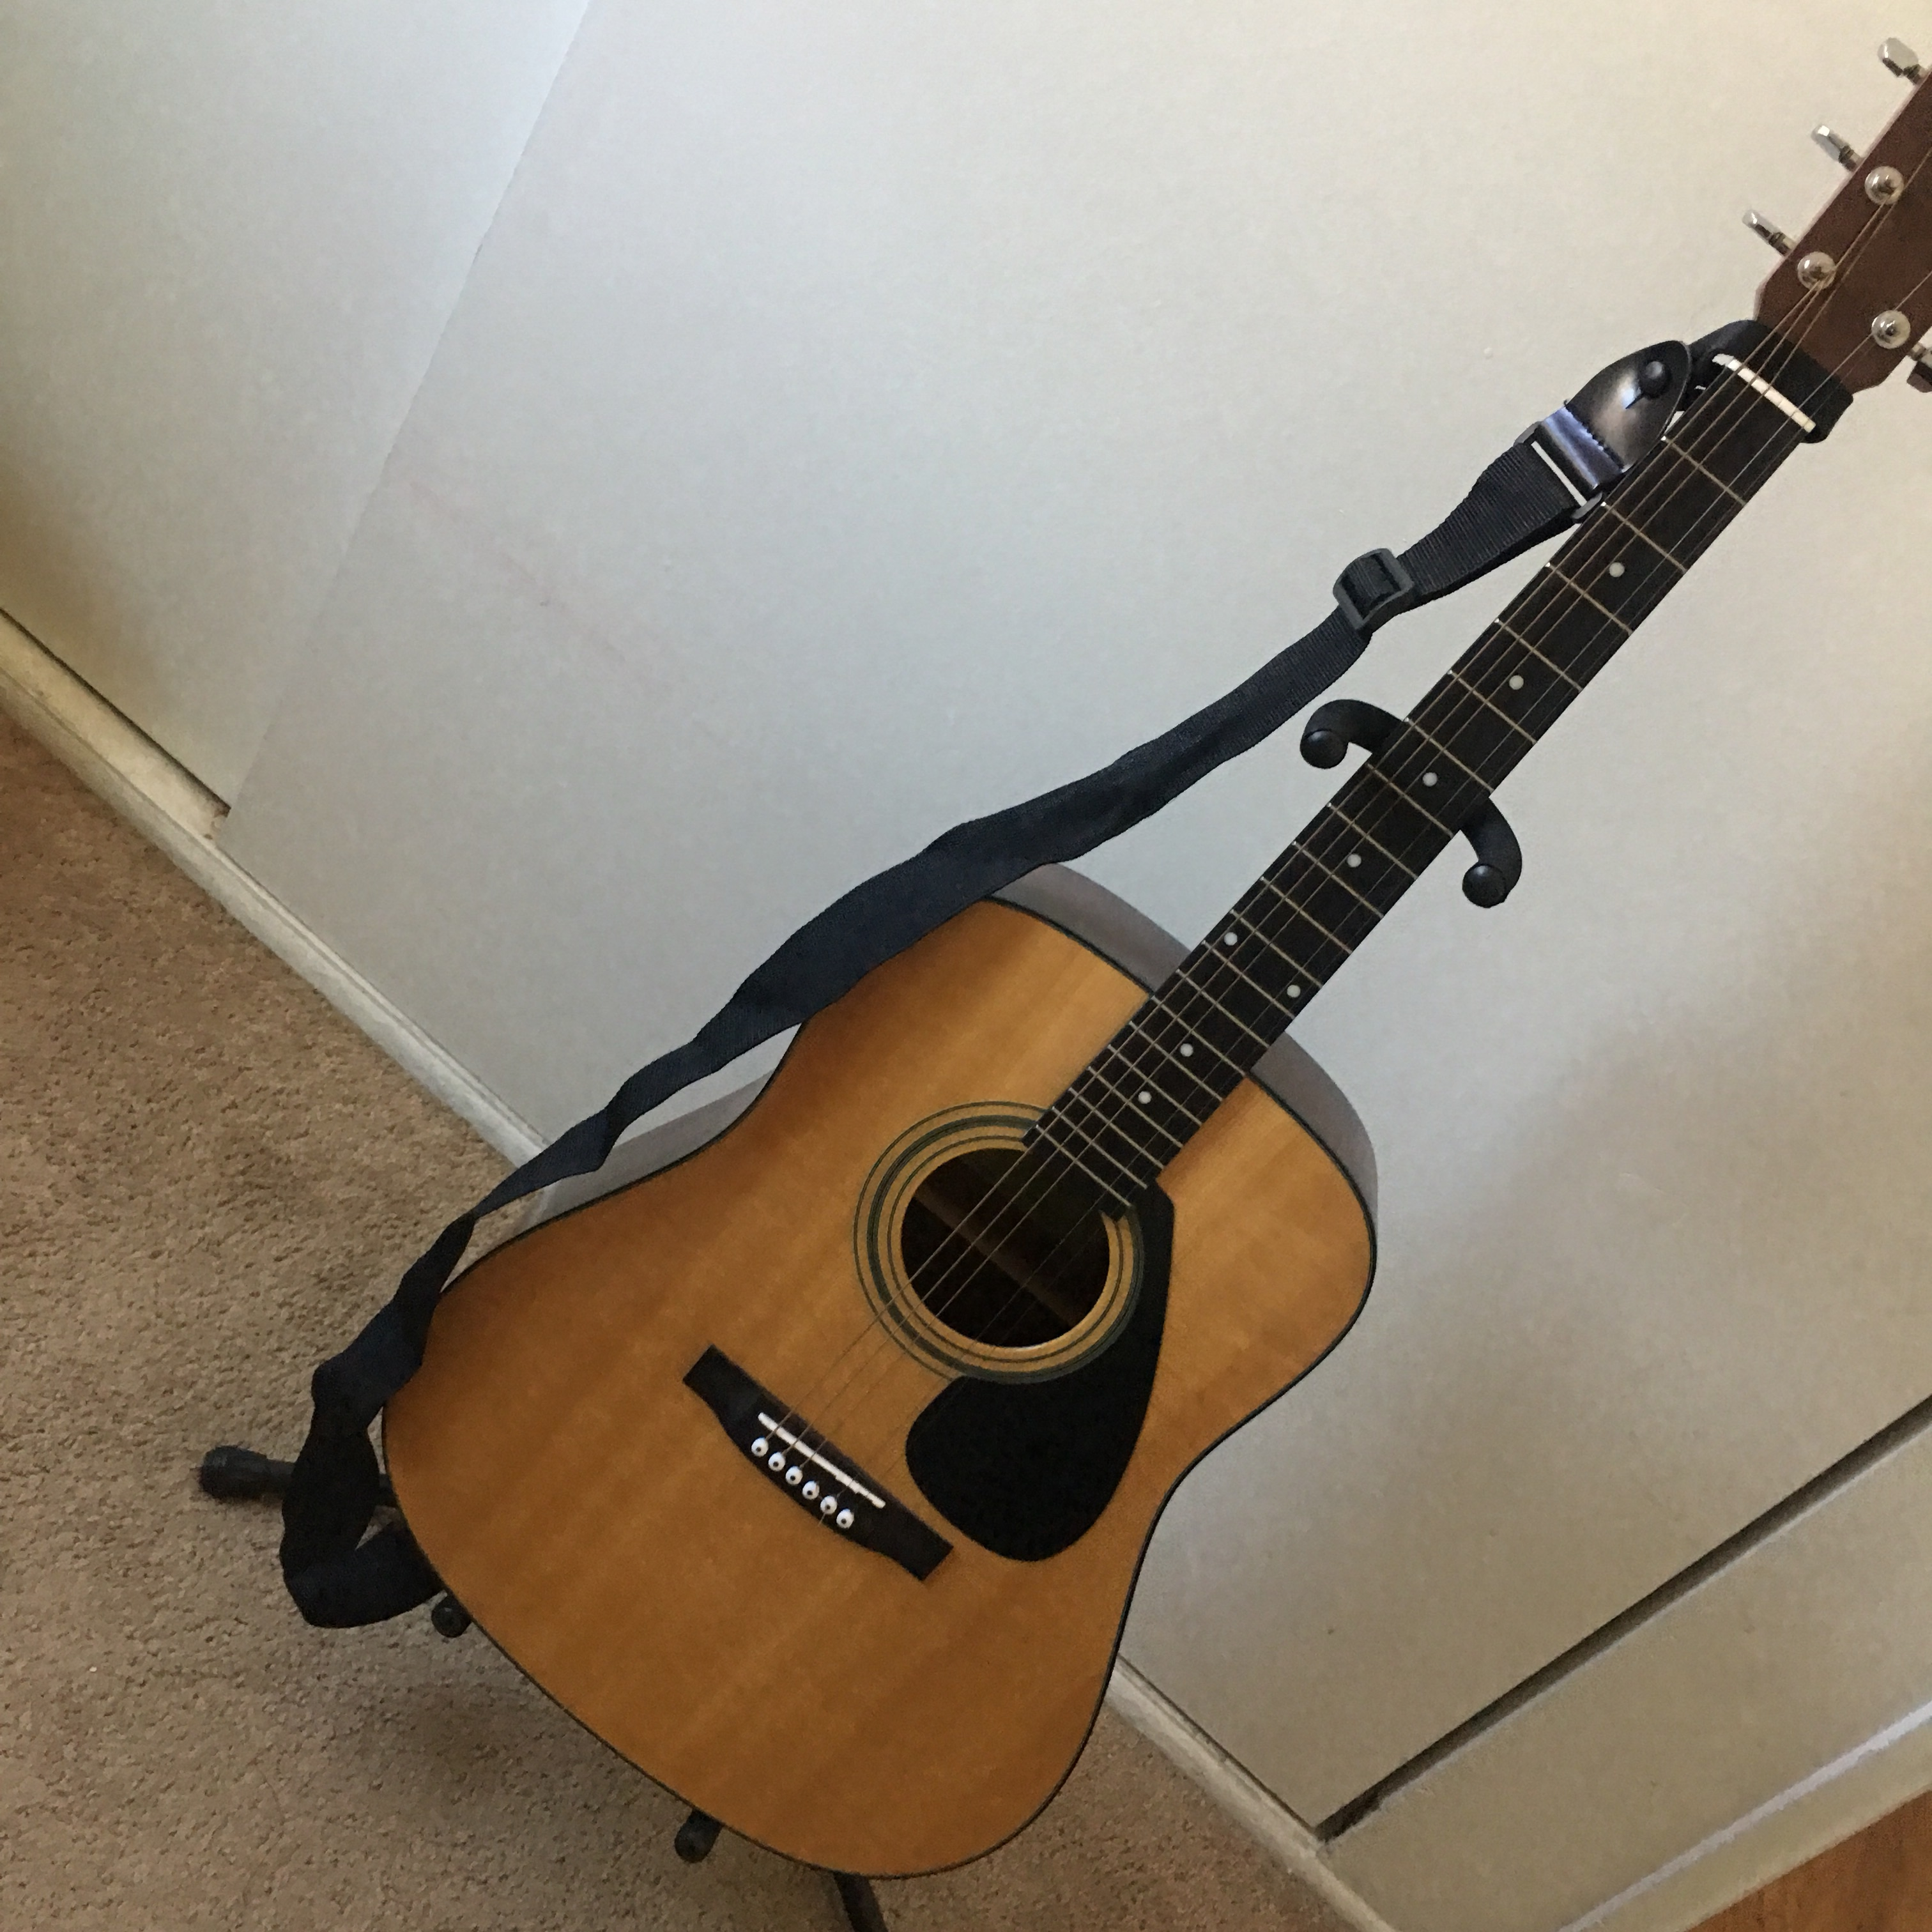 yamaha acoustic guitar, new used but one string    - Depop